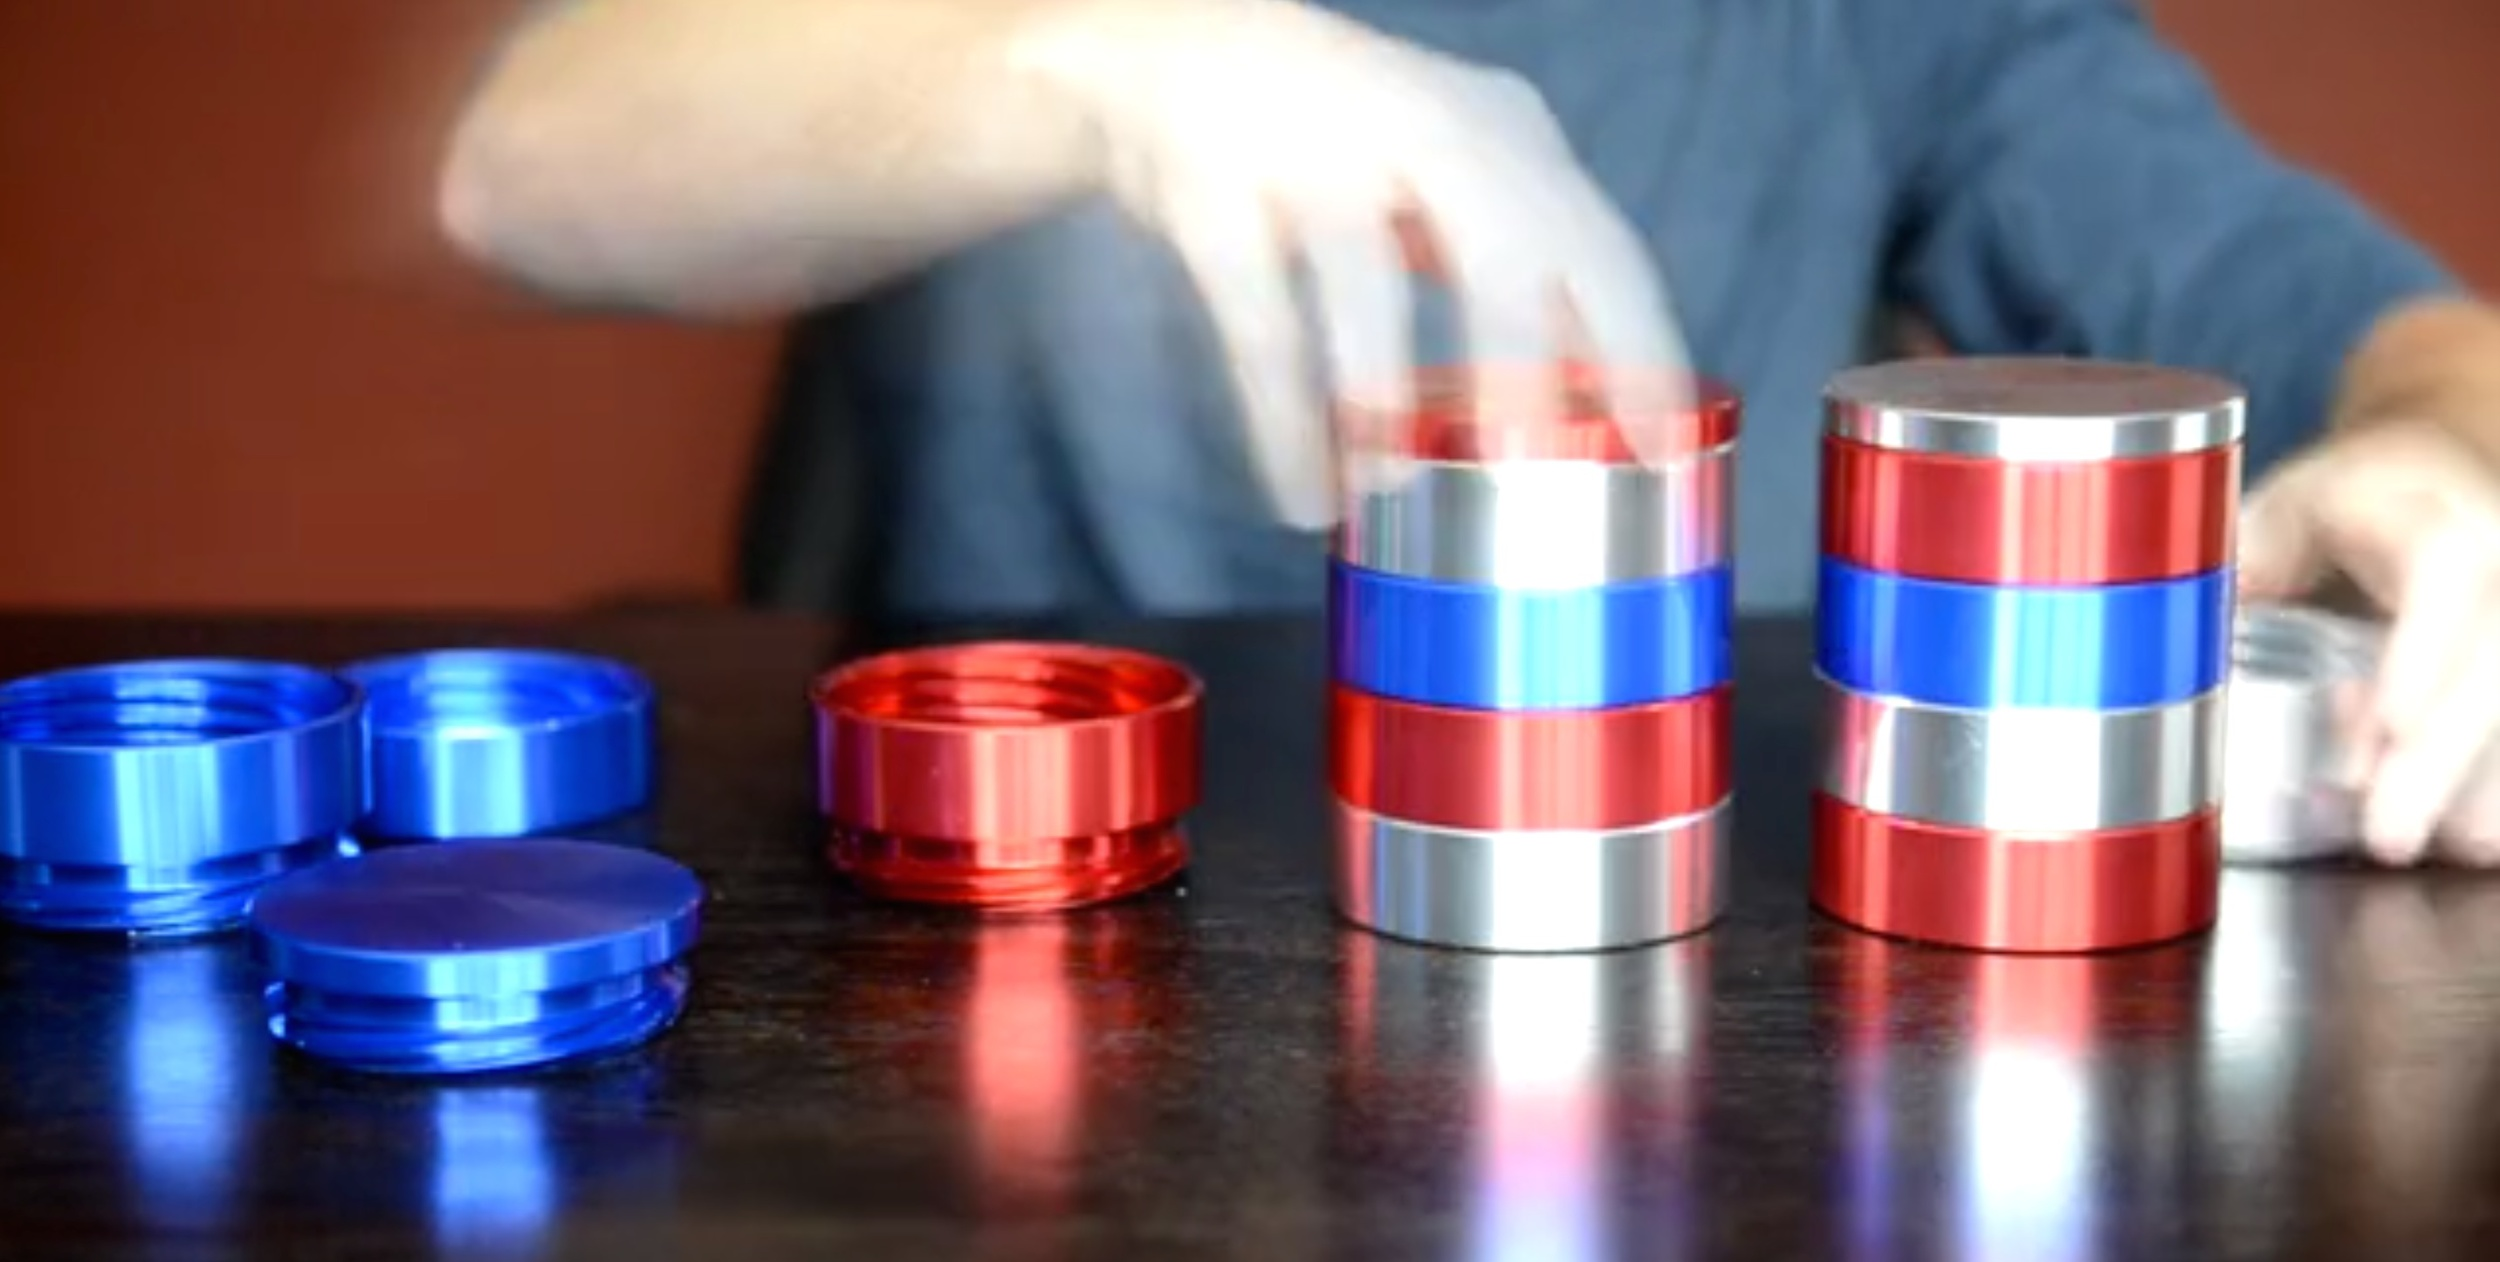 Stax: A Platform for 3D Printed Modifications